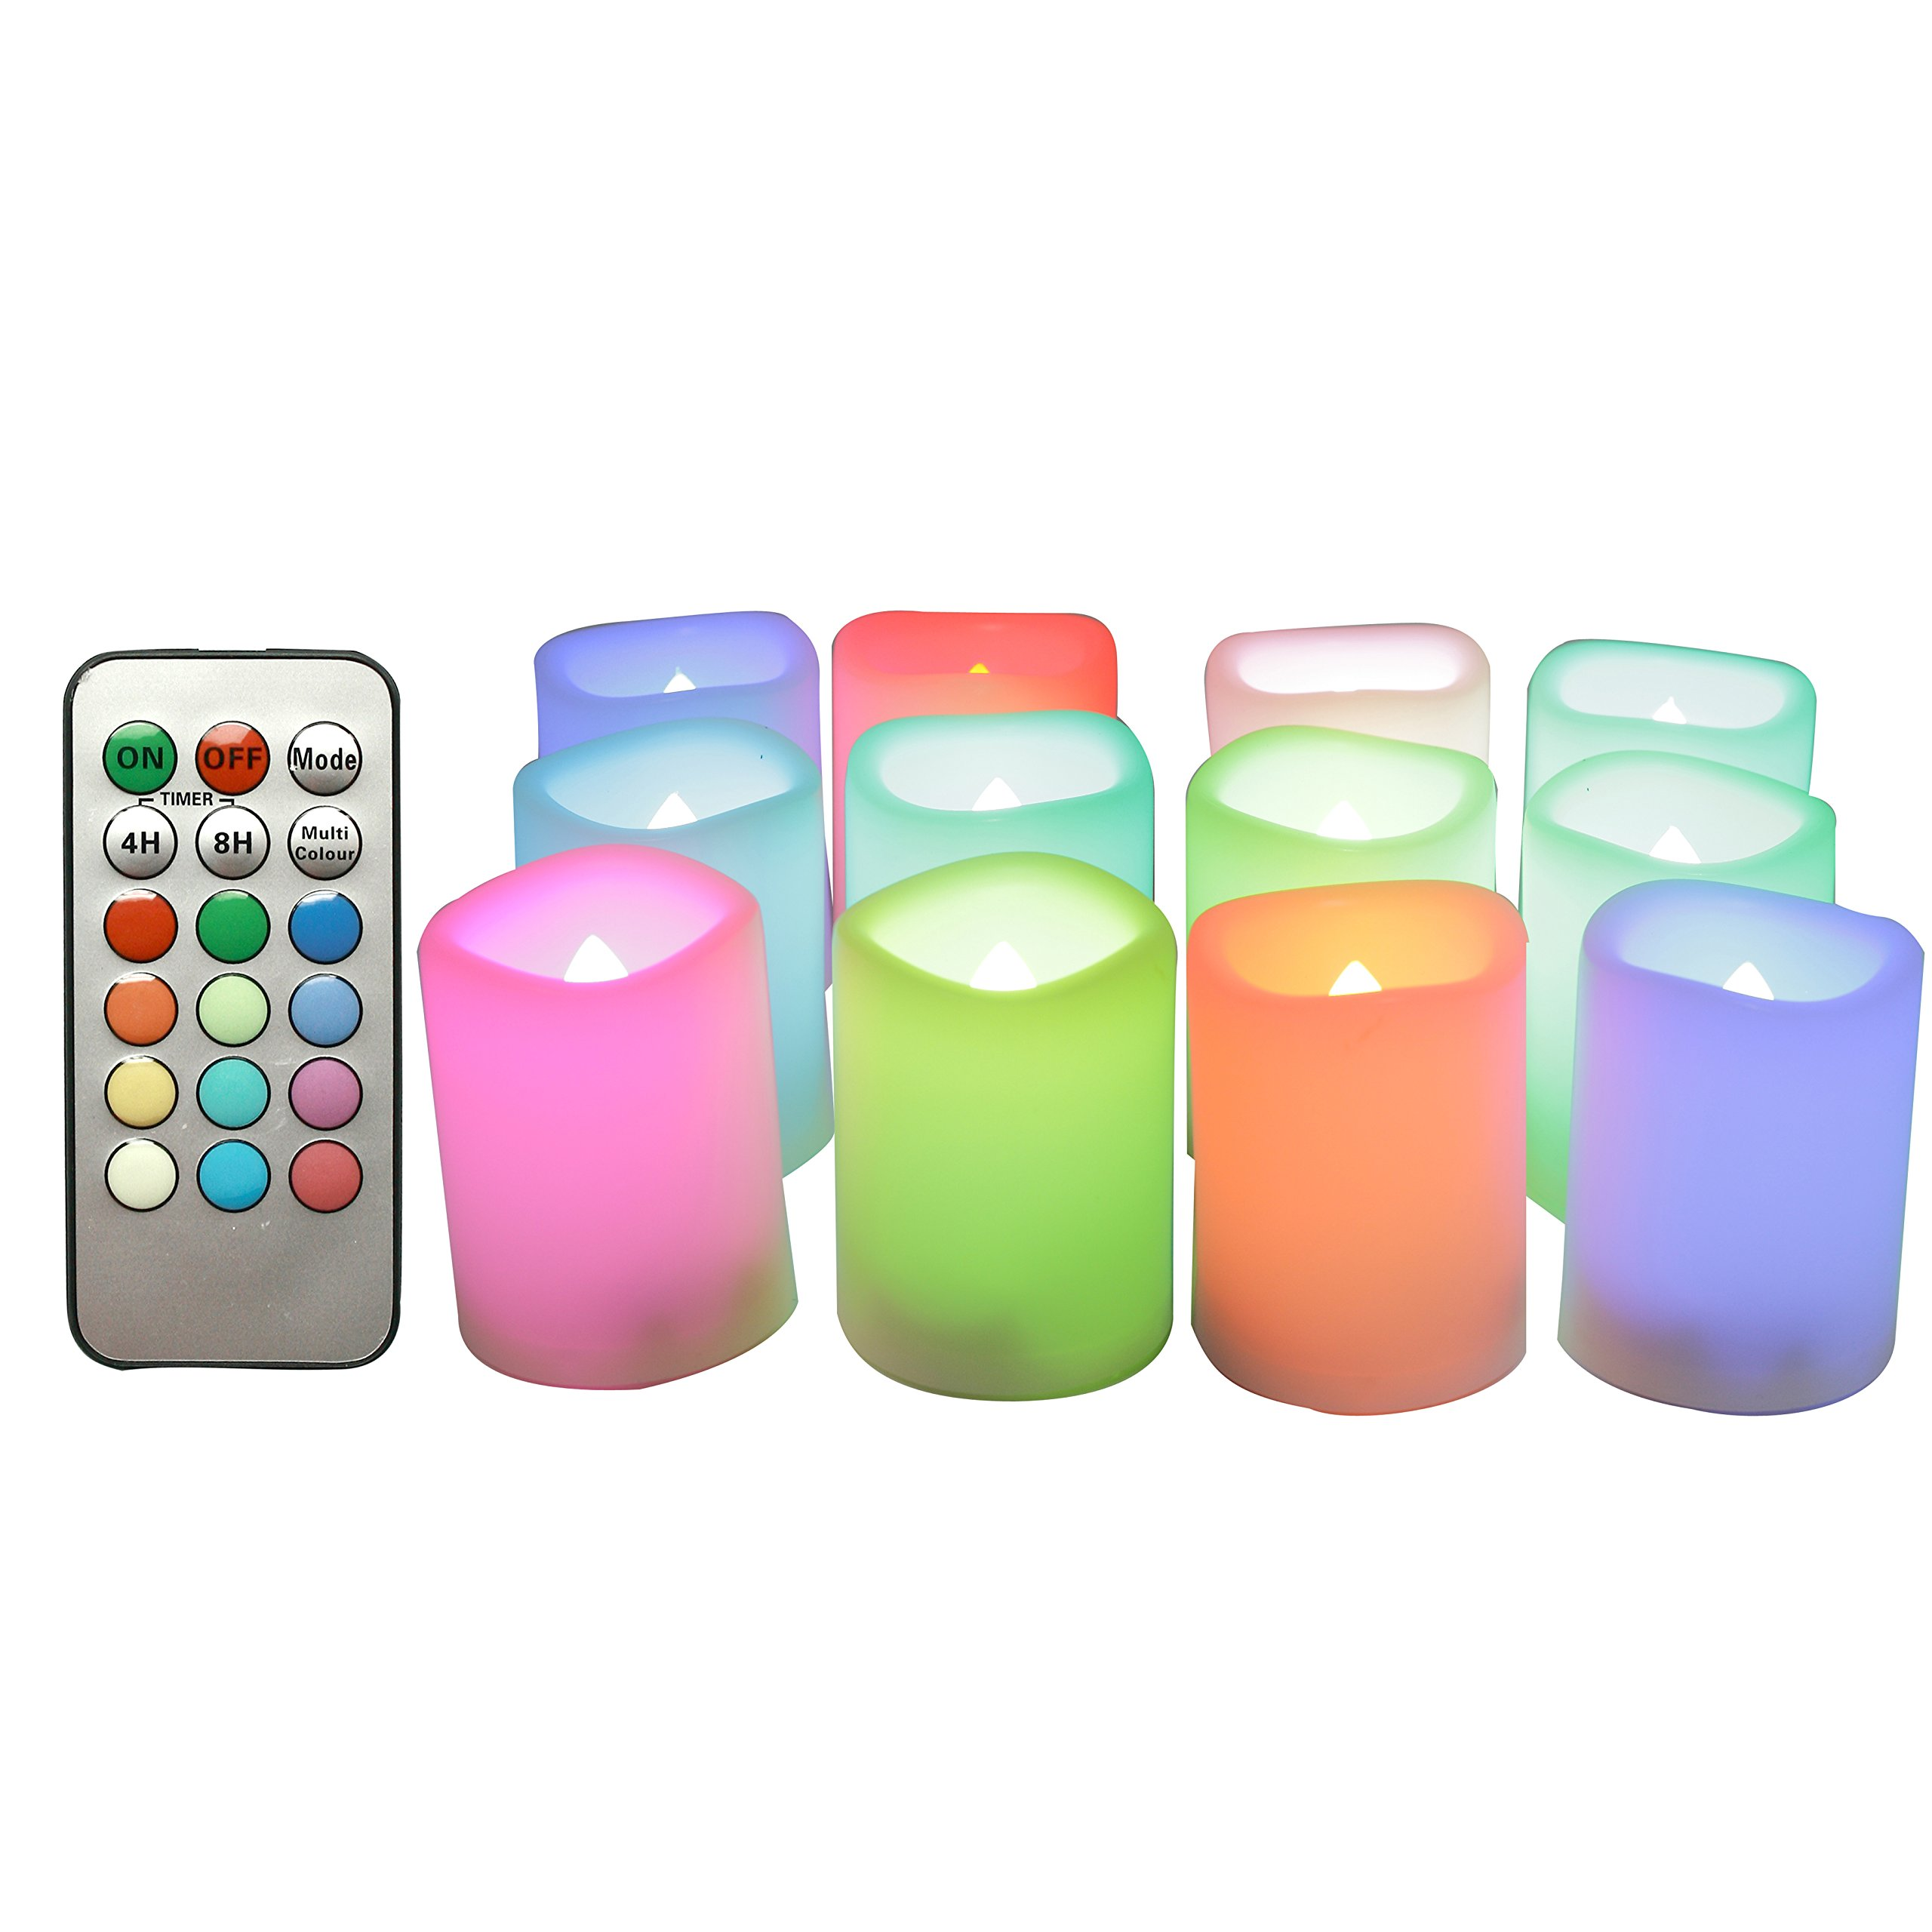 """CANDLE CHOICE 12-Pack Realistic Color Changing Flameless Votive Candles Bright Battery Operated RGB Multi-Color LED Votives with Remote and Timer 1.5""""x2"""" Party Wedding Birthday Holiday Décor Gift"""